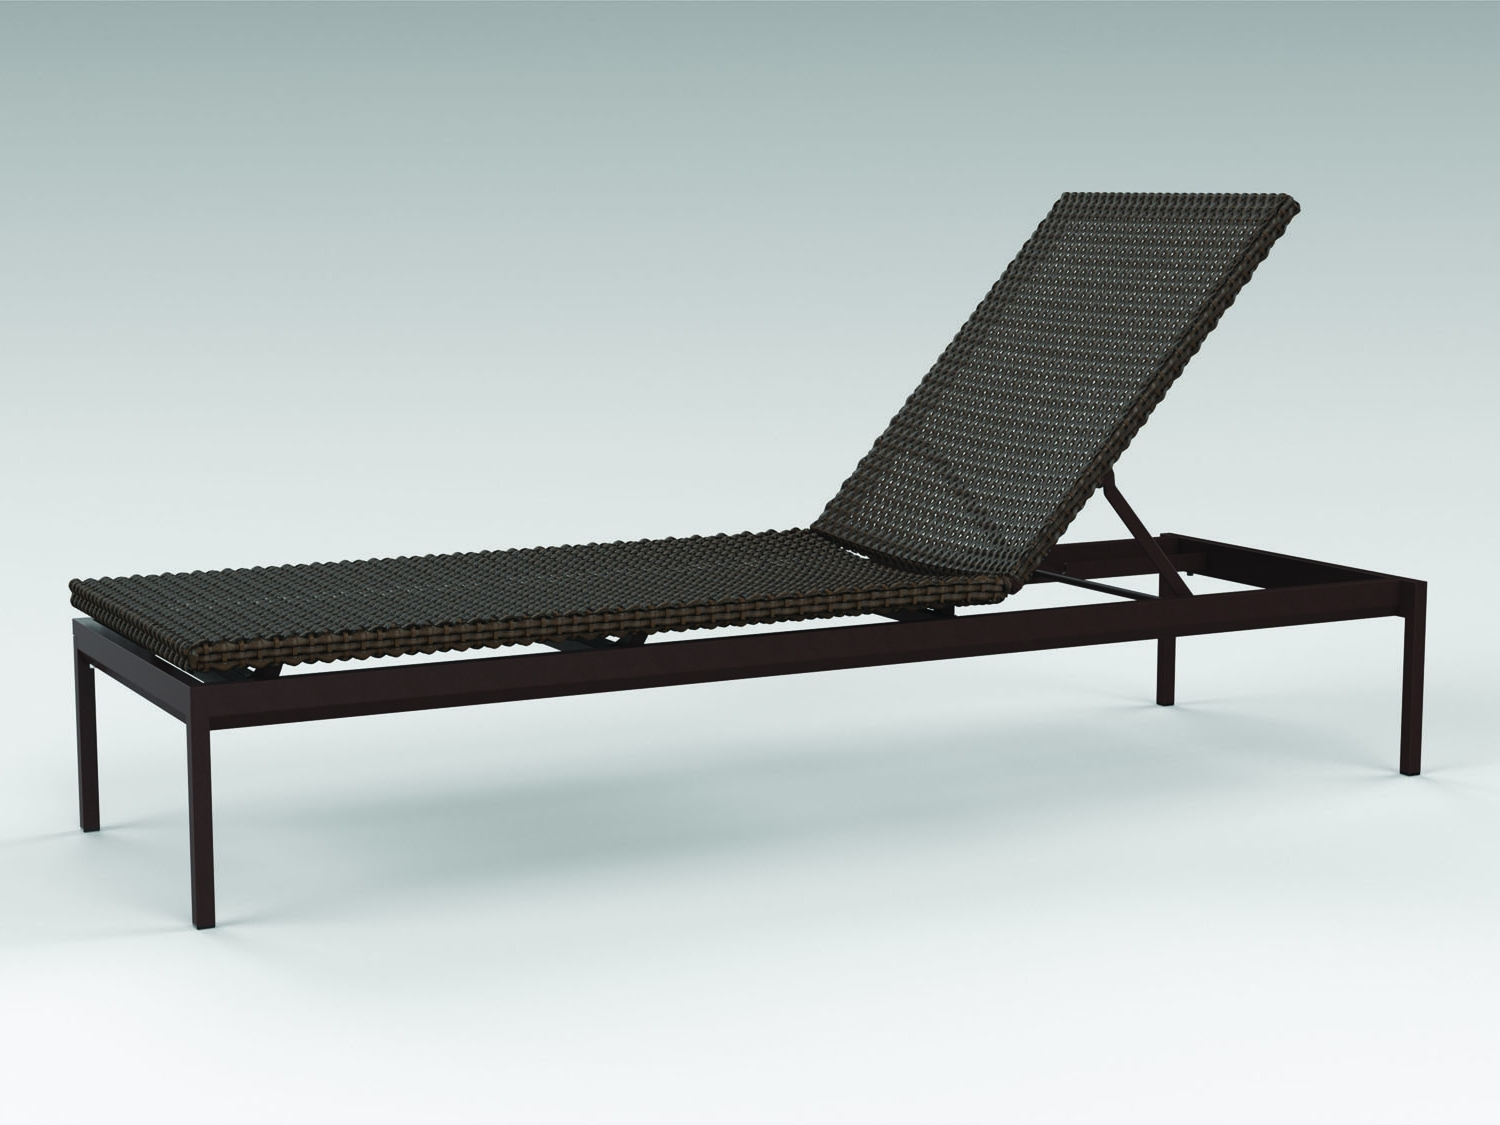 Well Liked Tropitone Chaise Lounge Chairs • Lounge Chairs Ideas Regarding Tropitone Chaise Lounges (View 14 of 15)